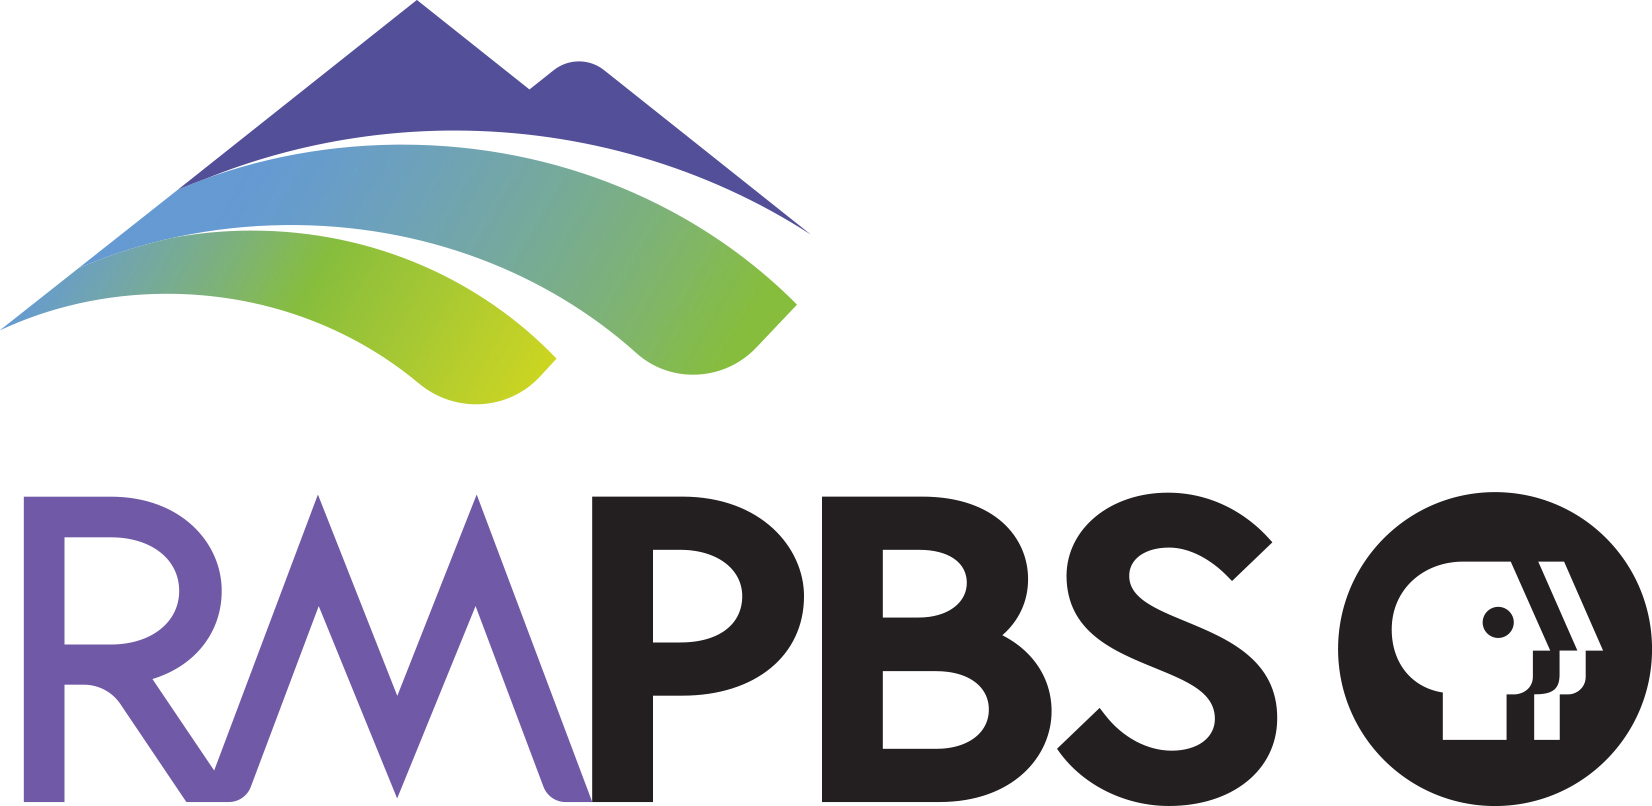 Rocky Mountain PBS